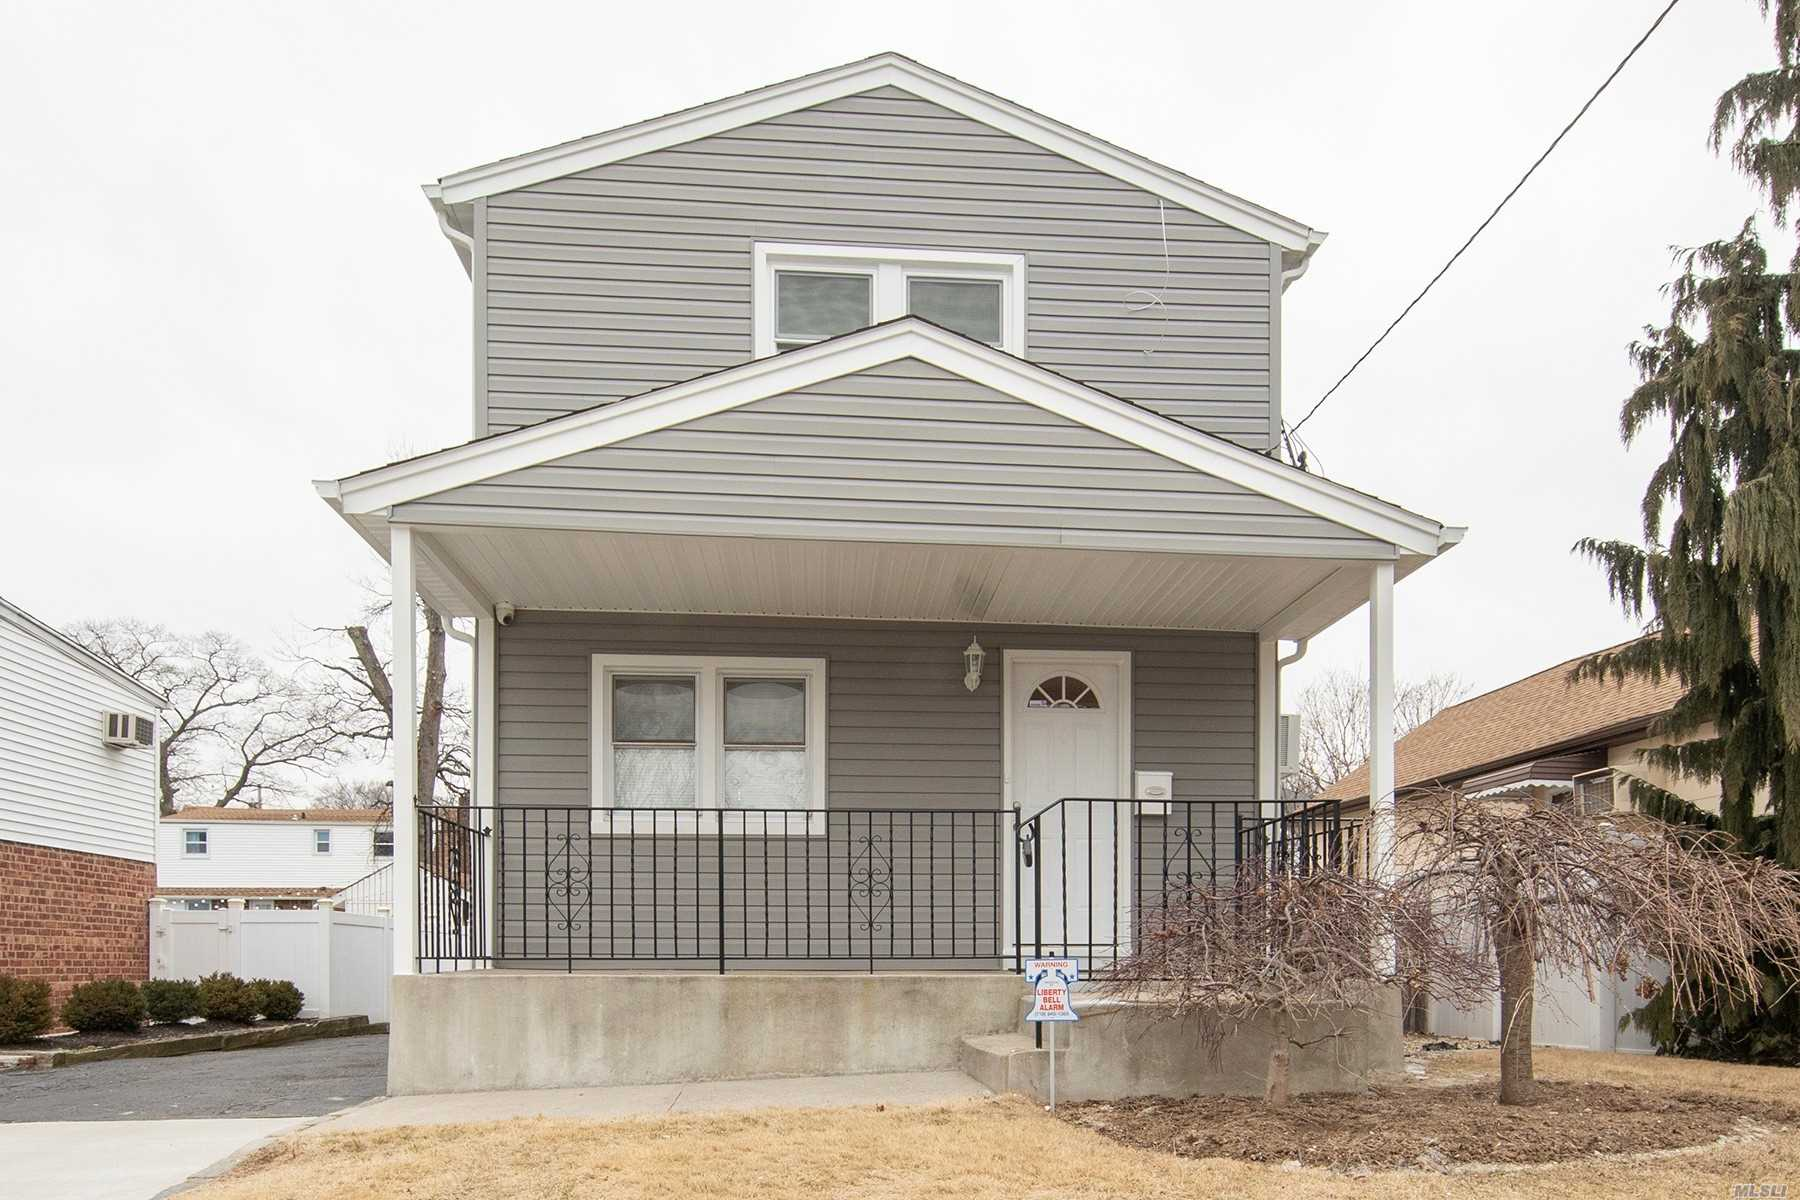 Gorgeous Home; New Kitchen (Stainless Steel Appliances); New Washer & Dryer In Kitchen; New Full Bath; Bedrooms Are Wired For Cable; Camera System (Interior & Exterior); Finished Basement.